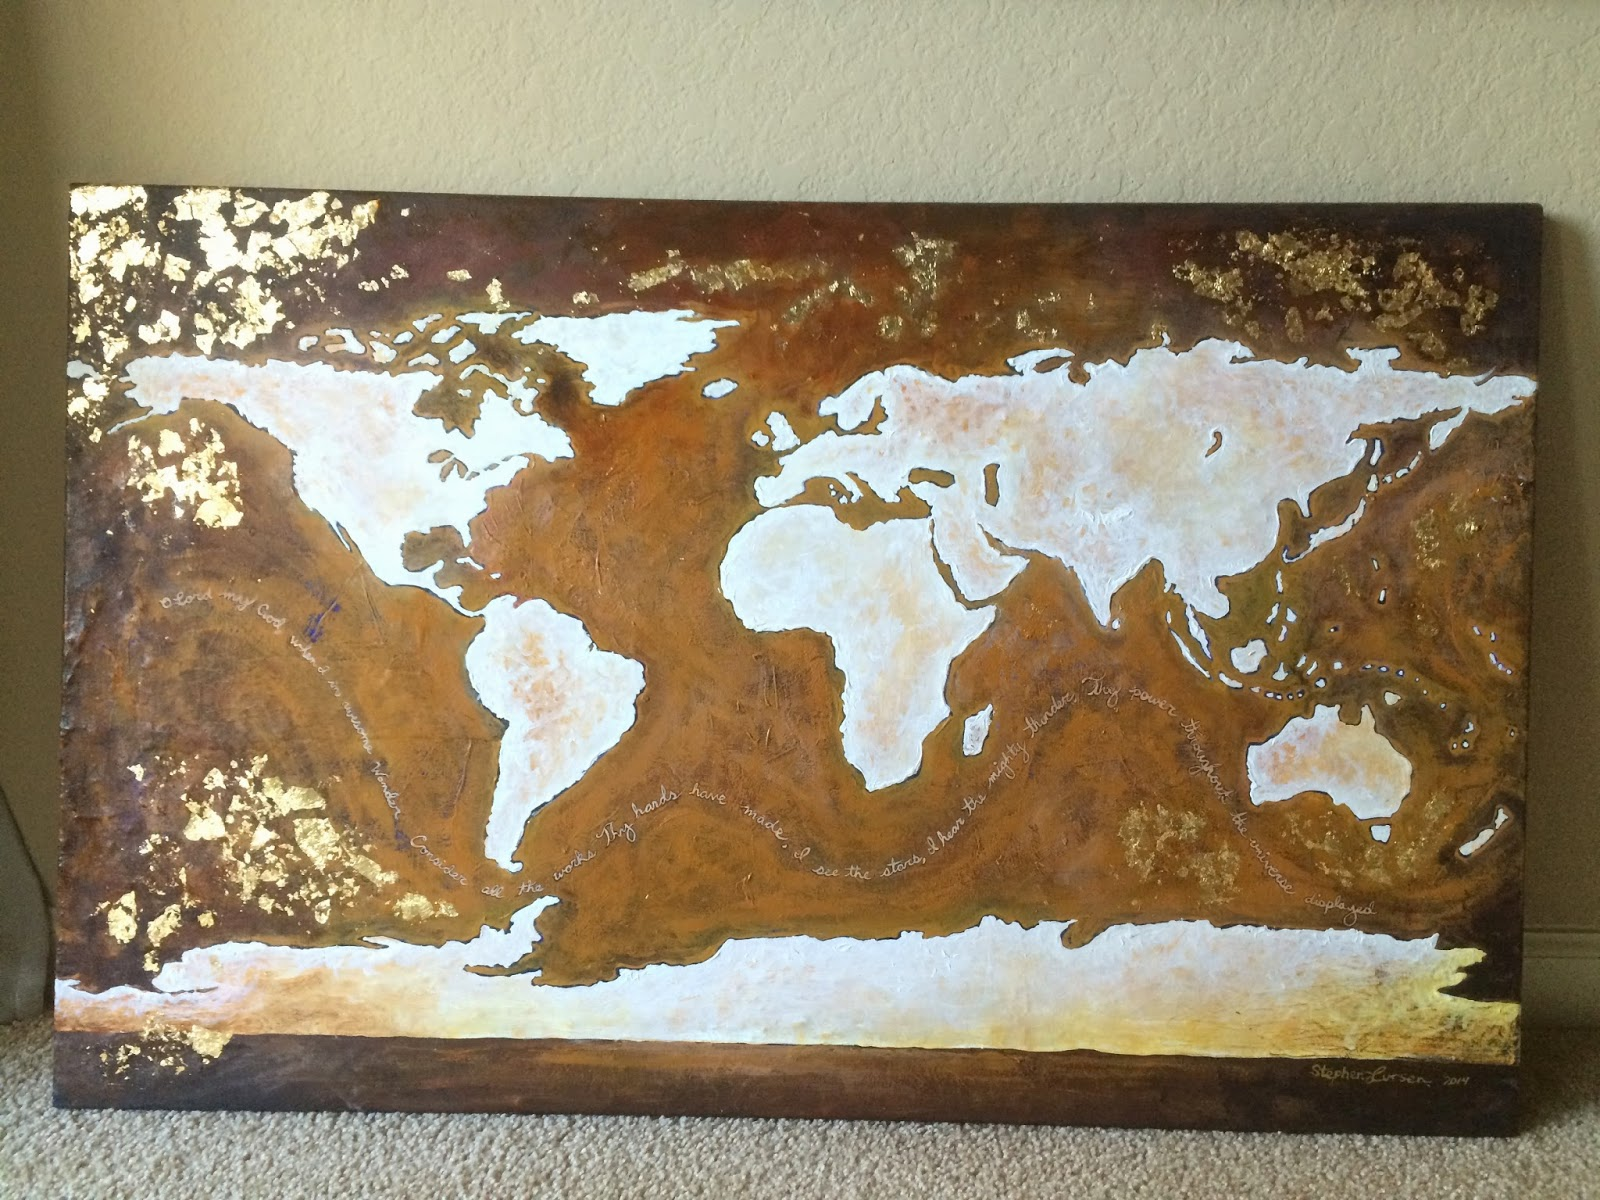 Stephen lursen art january 2015 custom world map with gold leaf sold gumiabroncs Choice Image